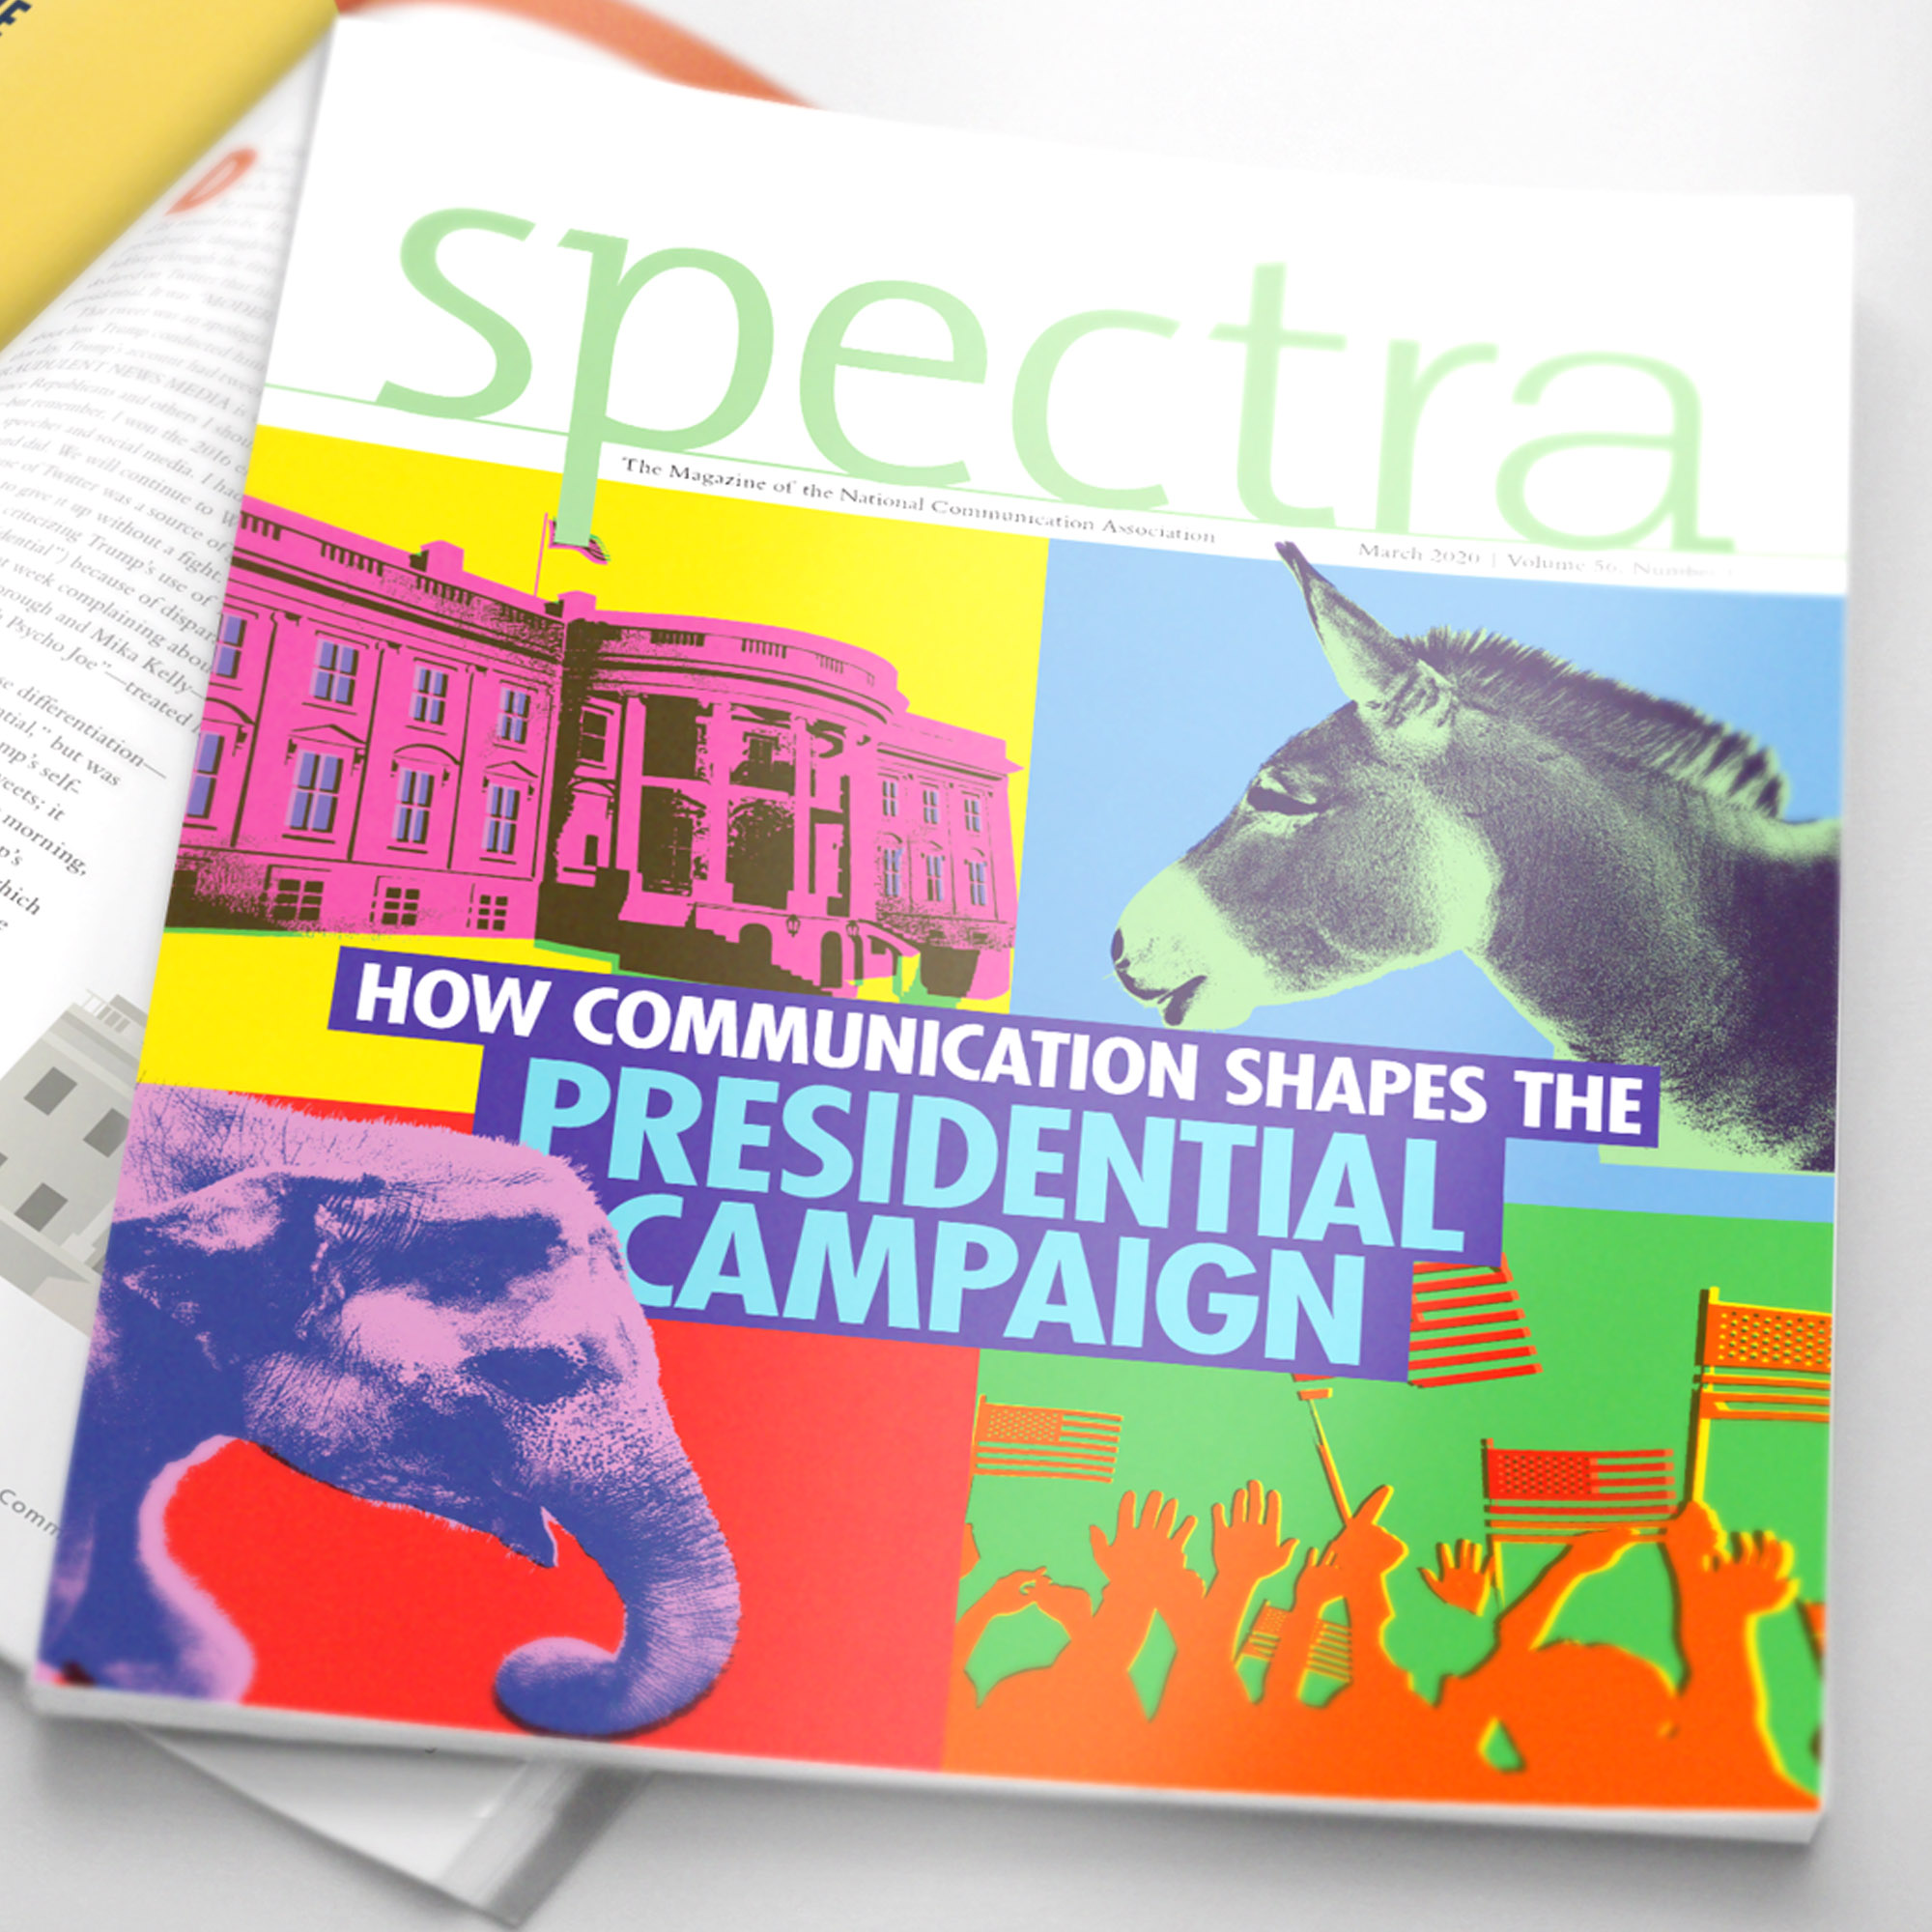 Spectra magazine cover design